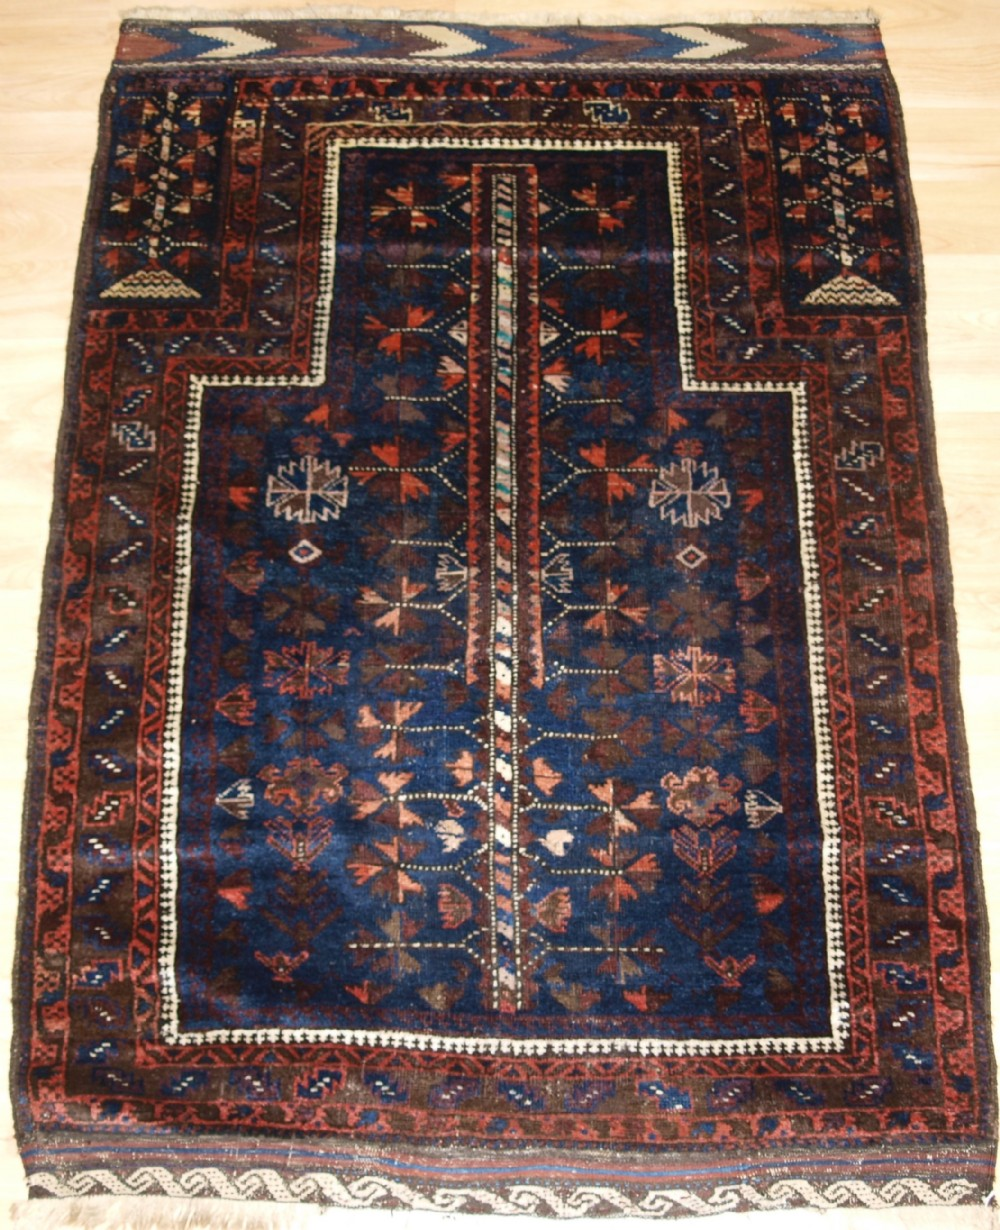 antique baluch prayer rug blue ground with tree of life late 19th century